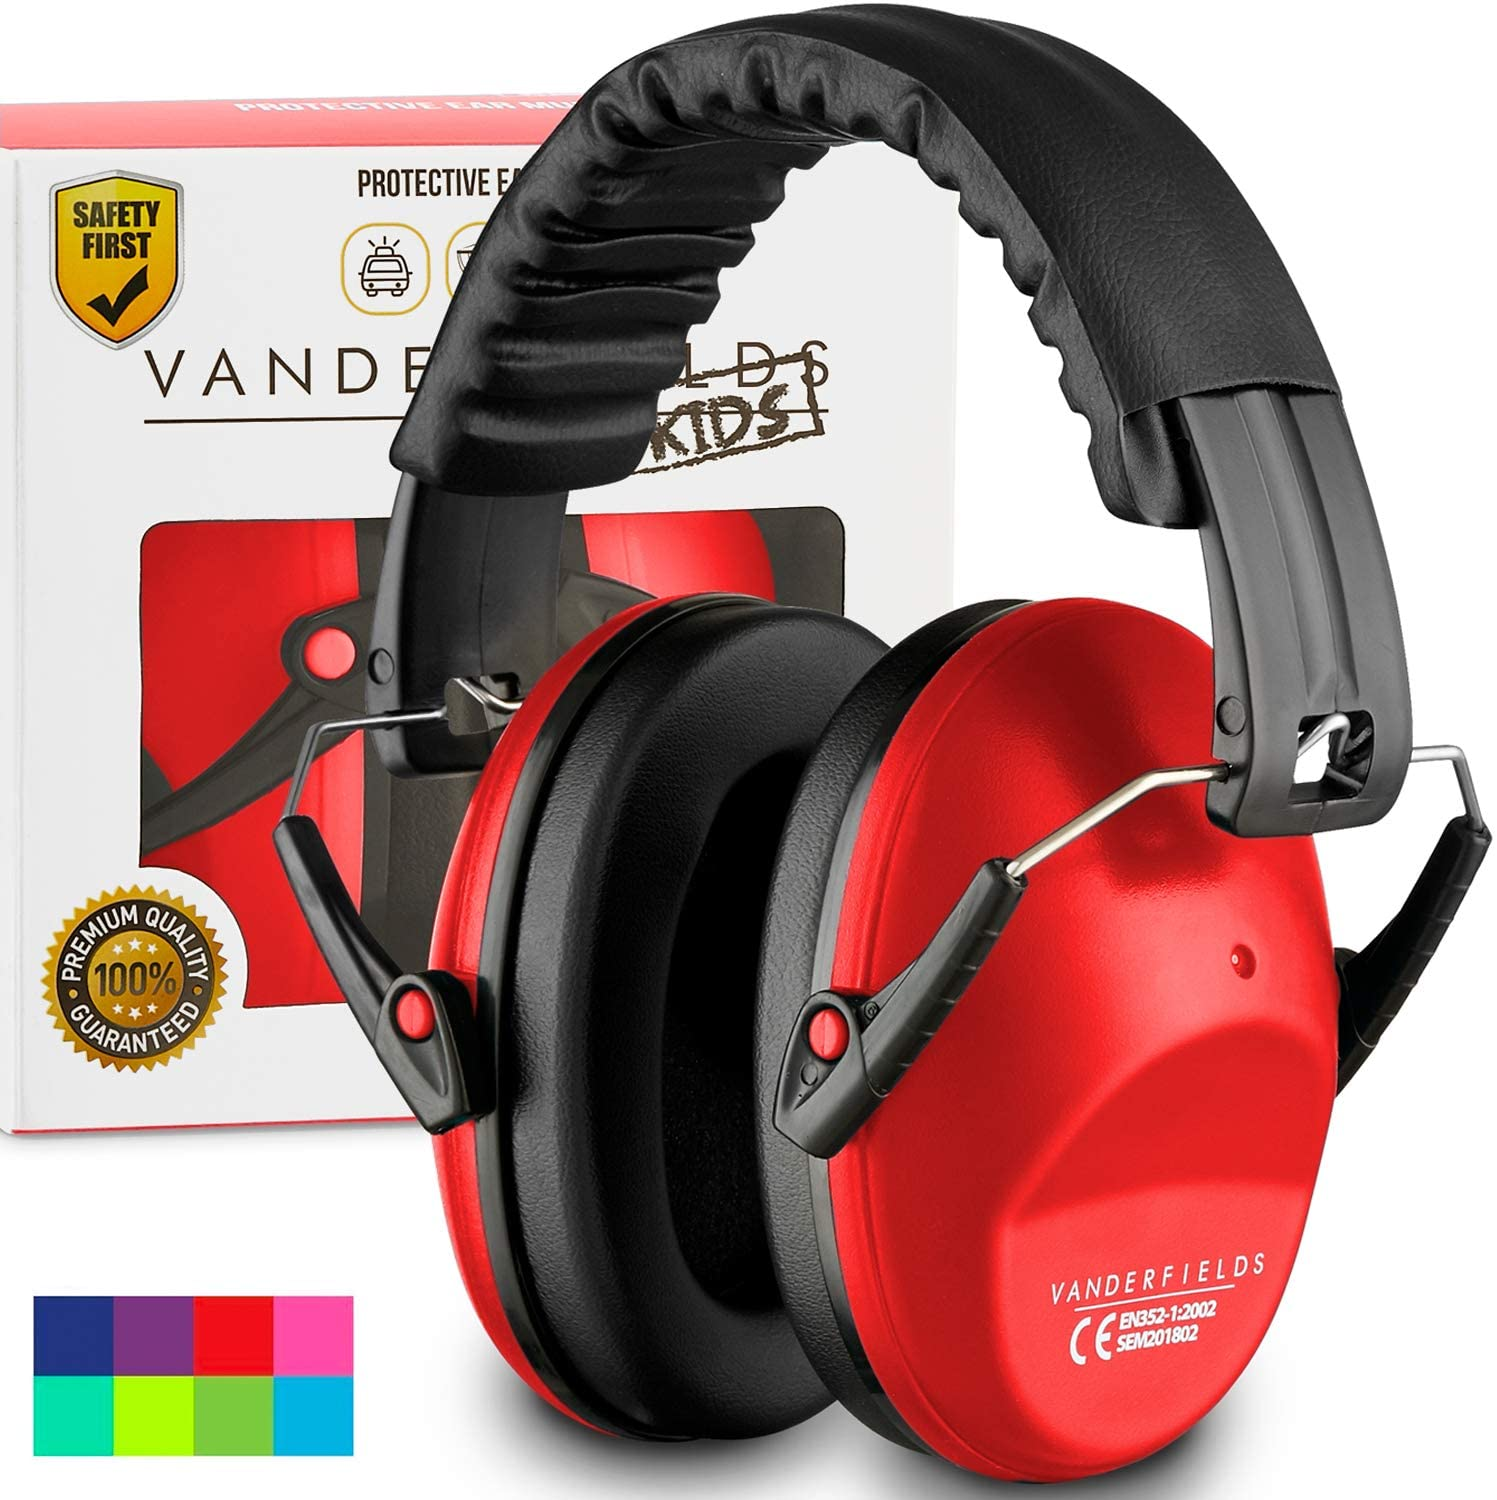 Vanderfields Earmuffs for Kids – Hearing Protection Muffs For Children Small Adults Women – Foldable Design Ear Defenders Protector with Adjustable Padded Headband for Optimal Noise Reduction - (Red) - Baby Noise Cancelling Headphones